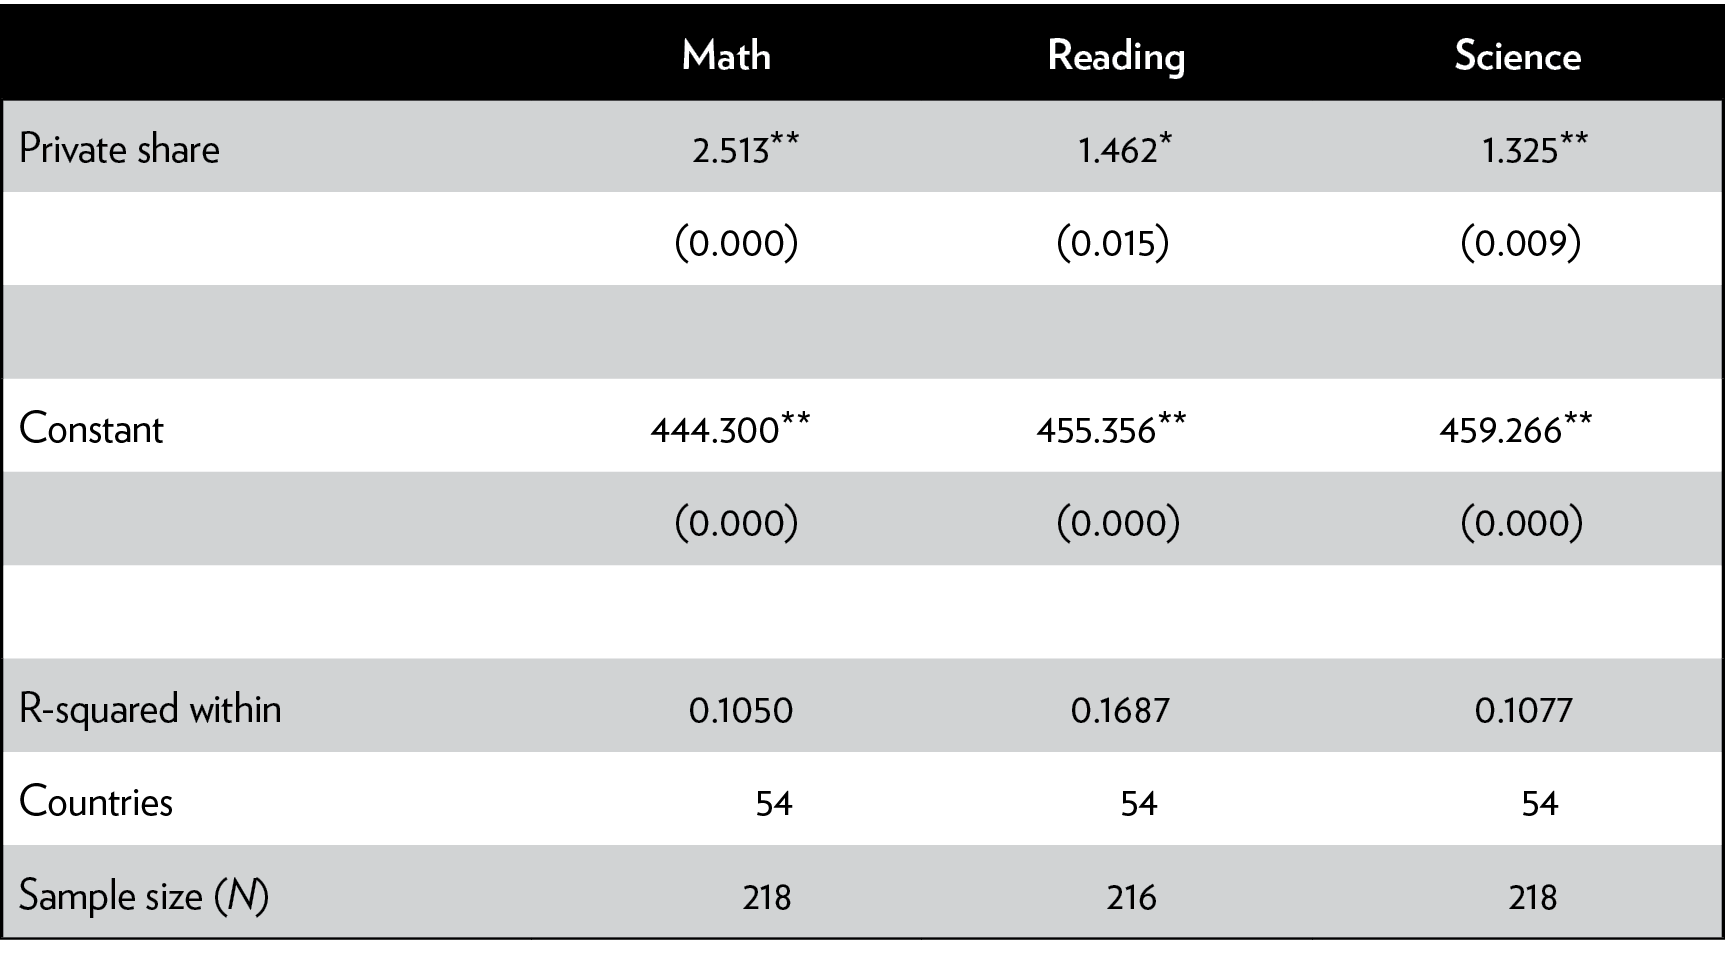 Studies From The Cato Institute Voucher Shell Rp 400000 Table 2 Effect Of 1 Percentage Point Increase In Private Schooling On Programme For International Student Assessment Pisa Scale Scores